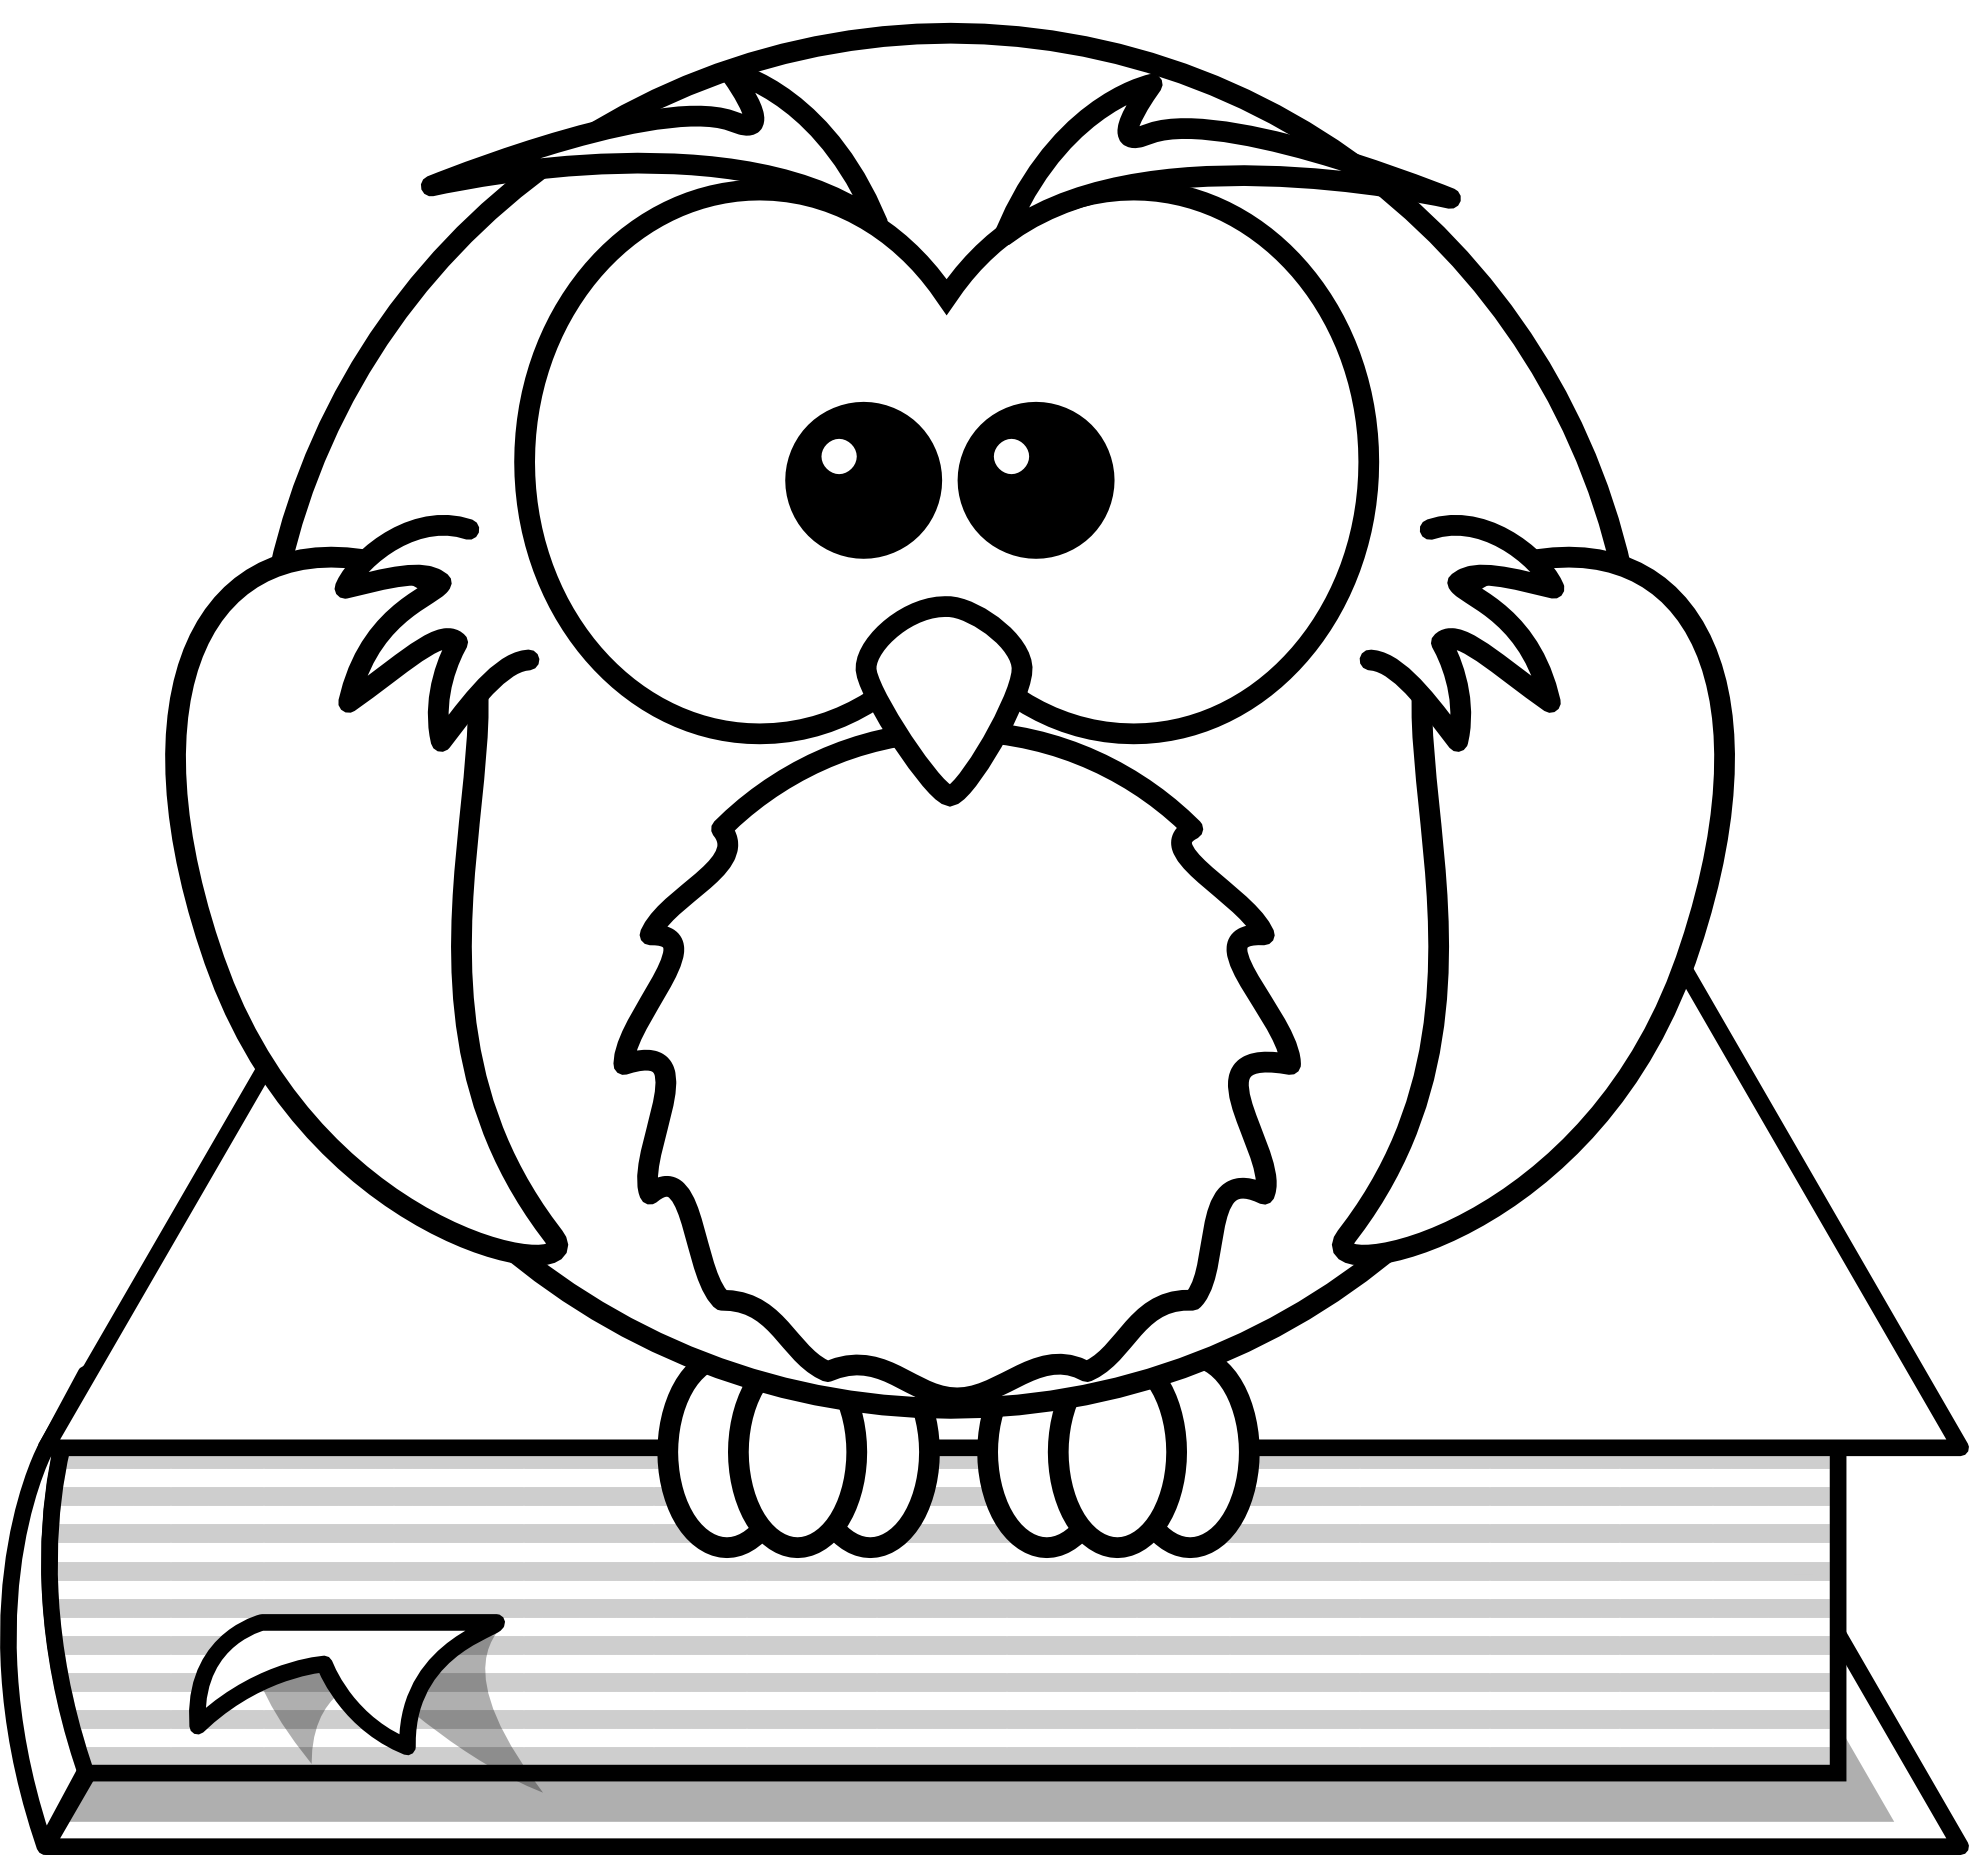 owl clipart black and white clipart panda free clipart images rh clipartpanda com owl drawings black and white clipart cute owl clipart black and white